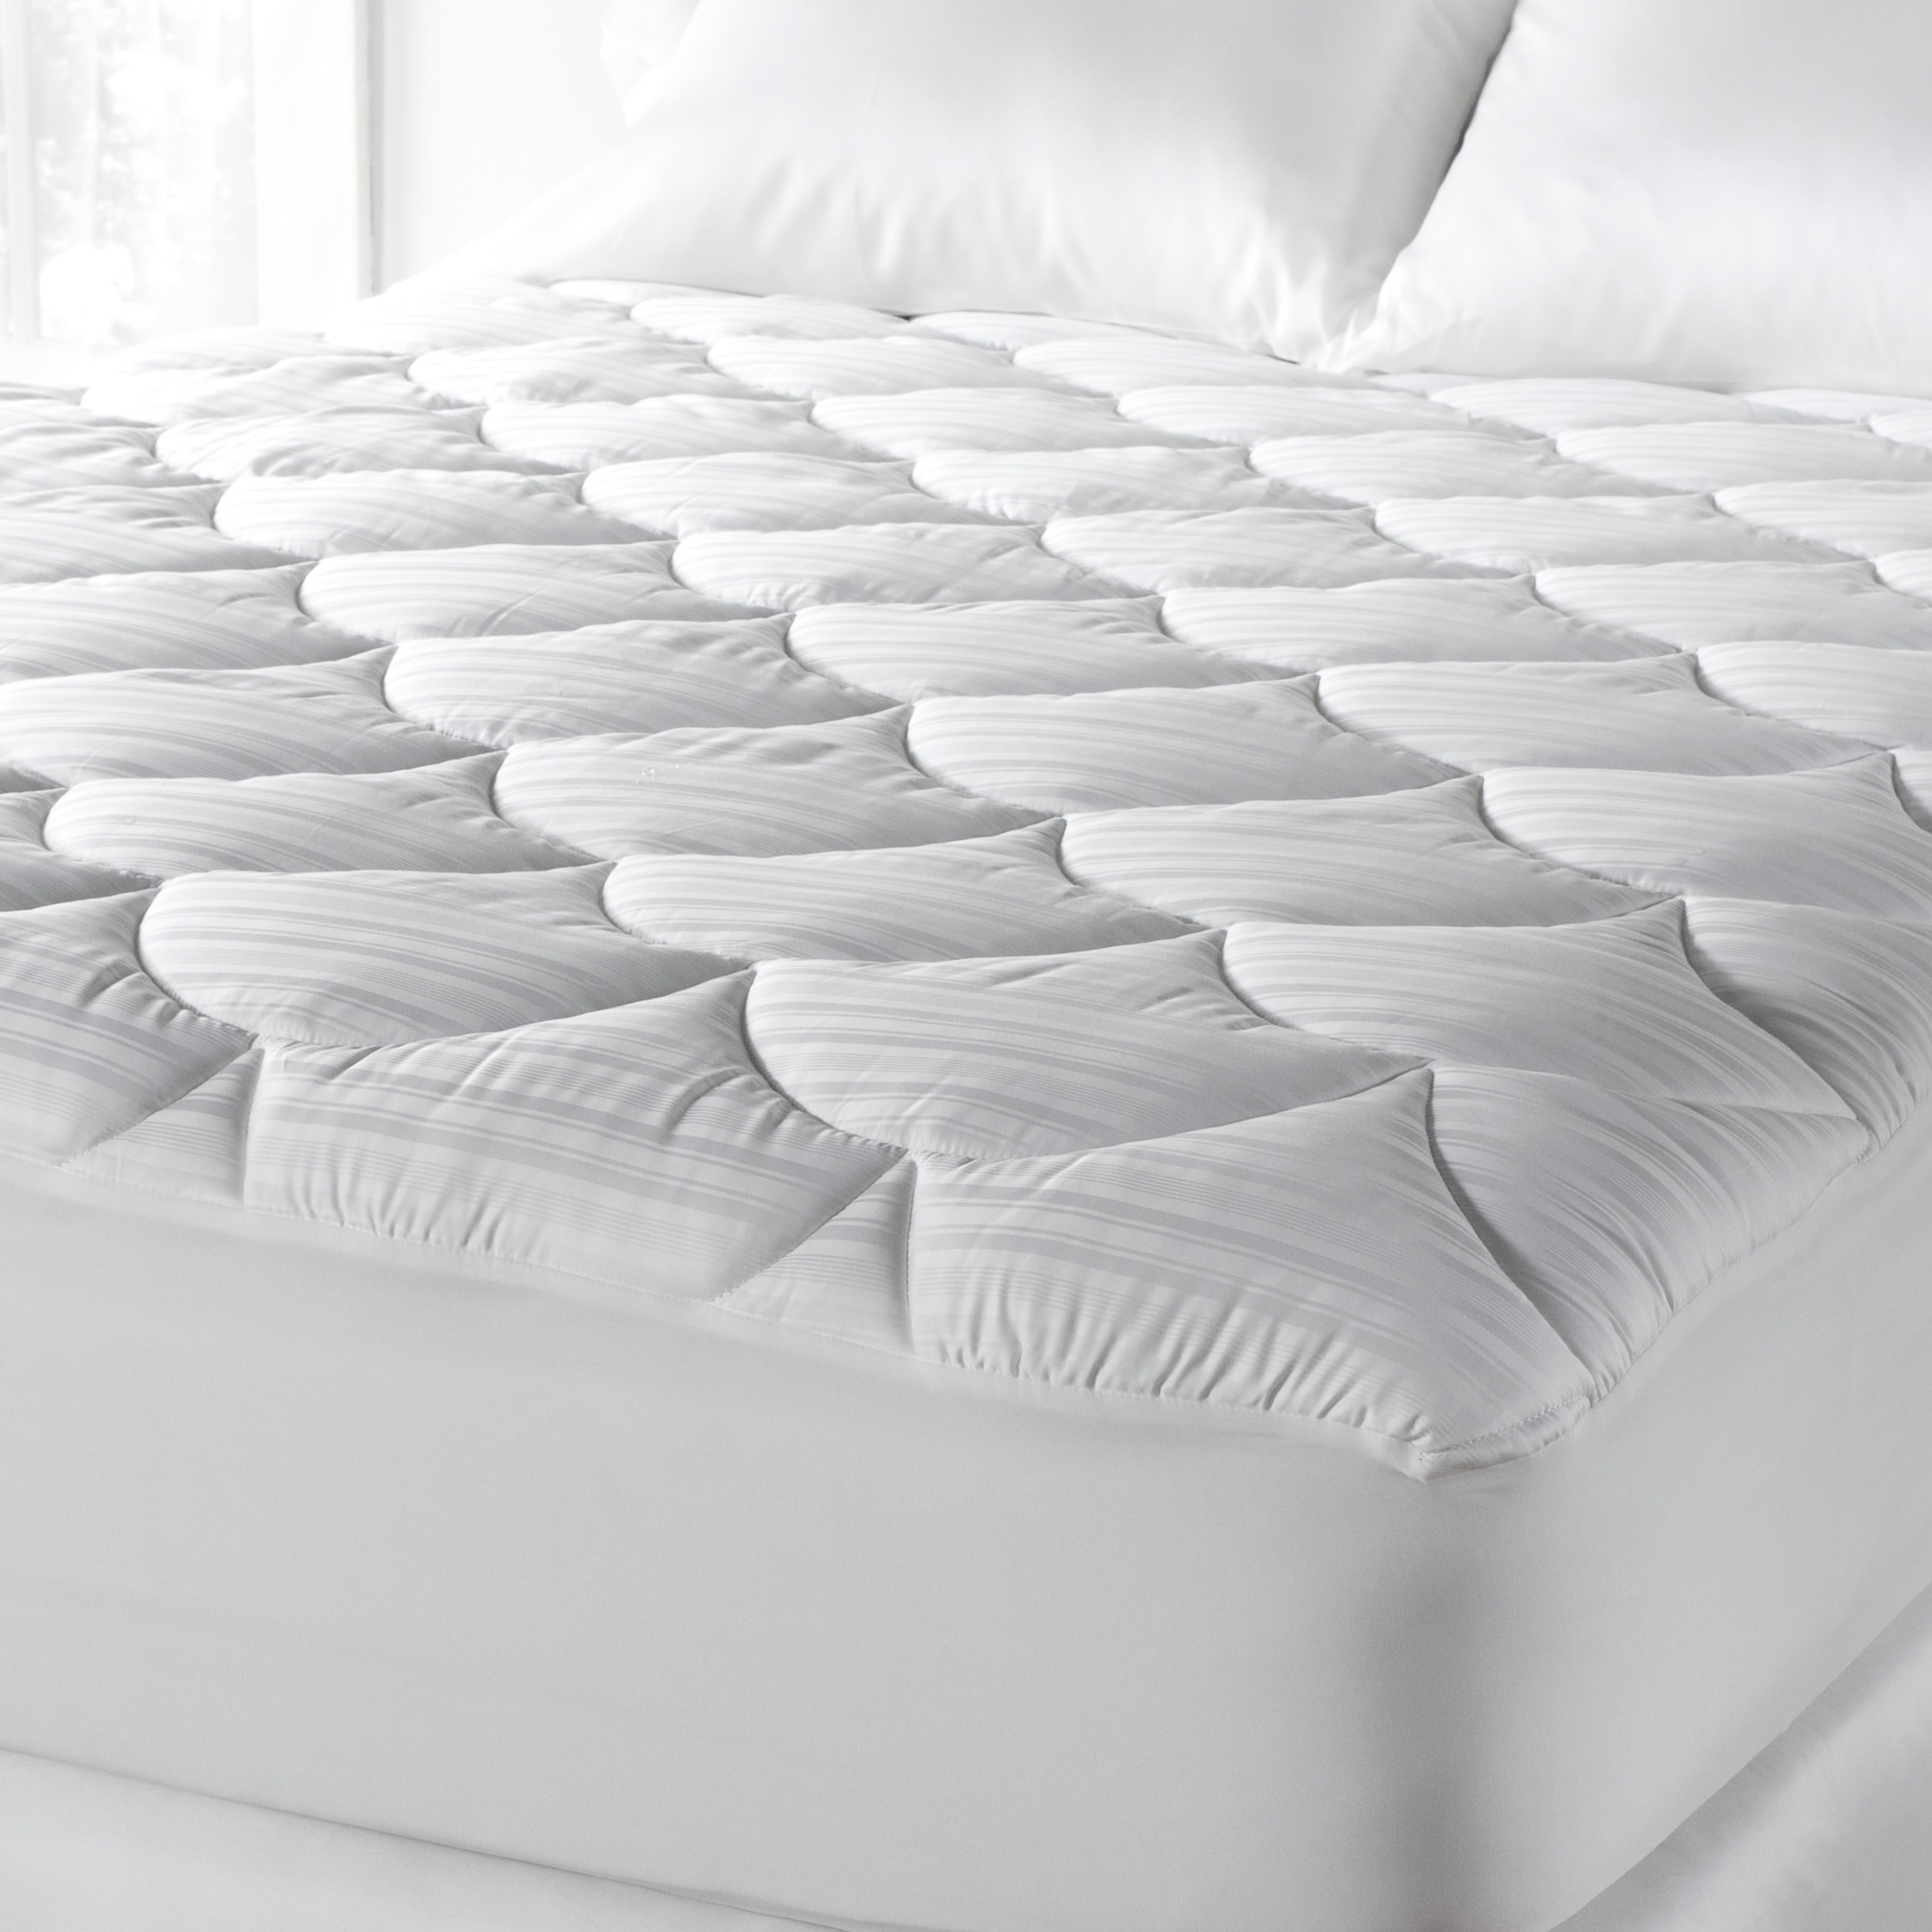 Mattress Cover.Primaloft 600 Thread Count Extra Plush Hypoallergenic Mattress Pad White